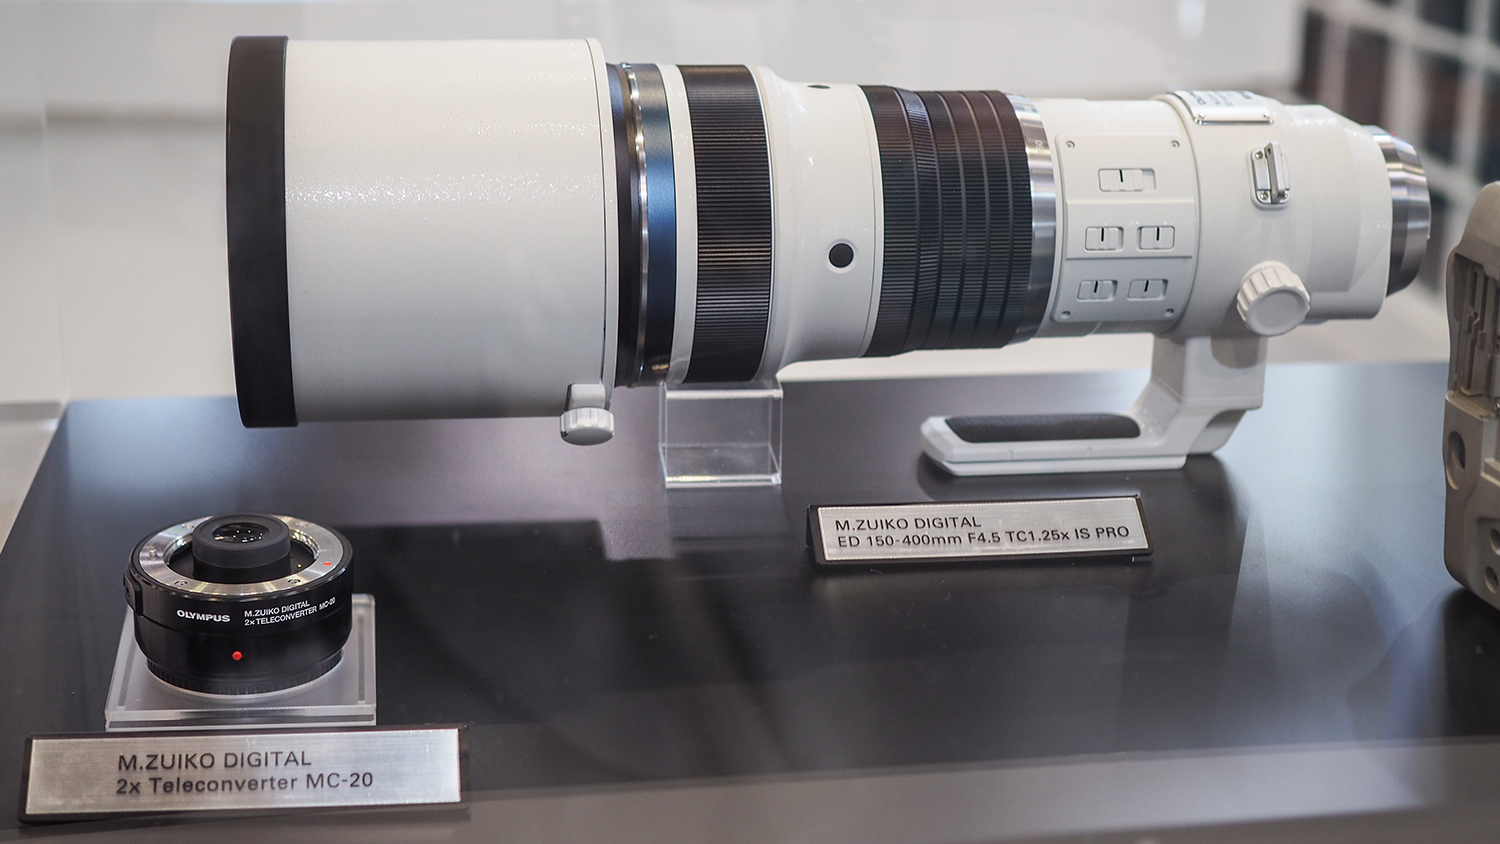 TPS 2019: Olympus 150-400mm f/4.5 Pro + MC-20 converter deliver 2000mm range